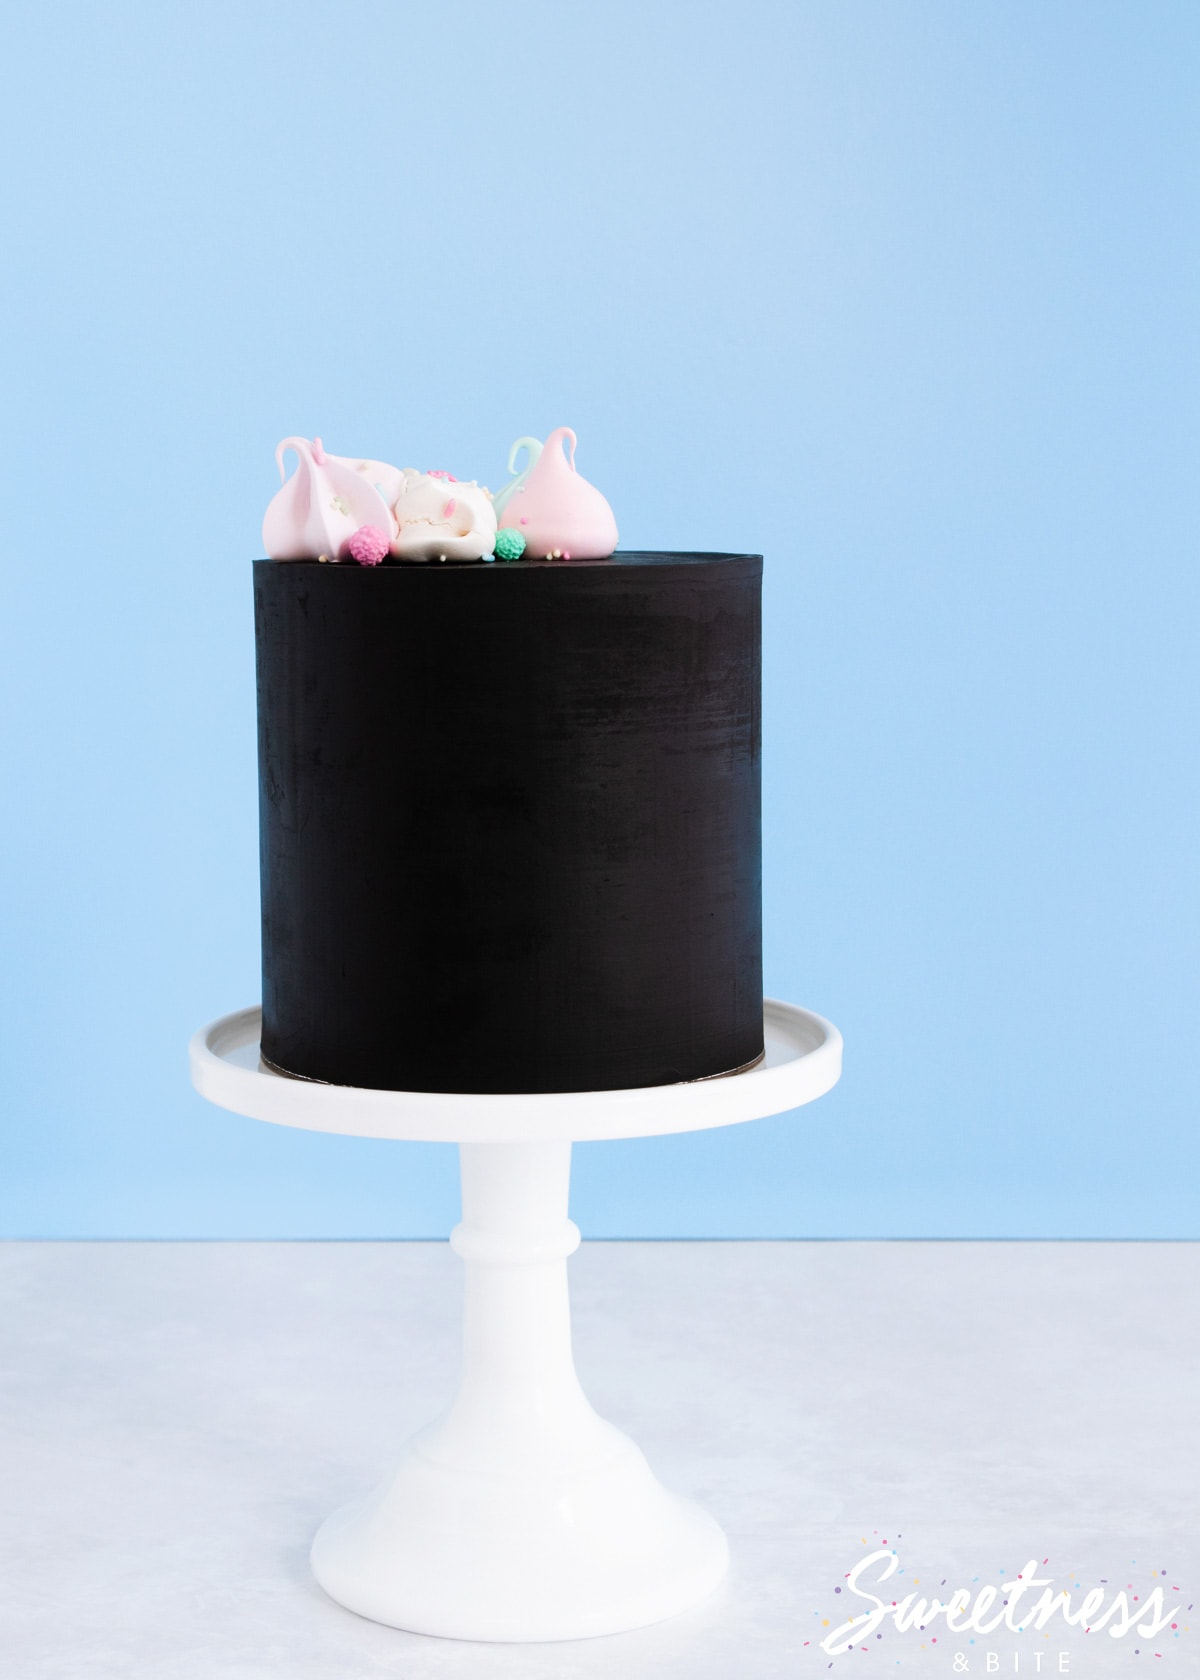 A cake covered in black chocolate ganache, on a white cake stand, topped with pastel meringues.